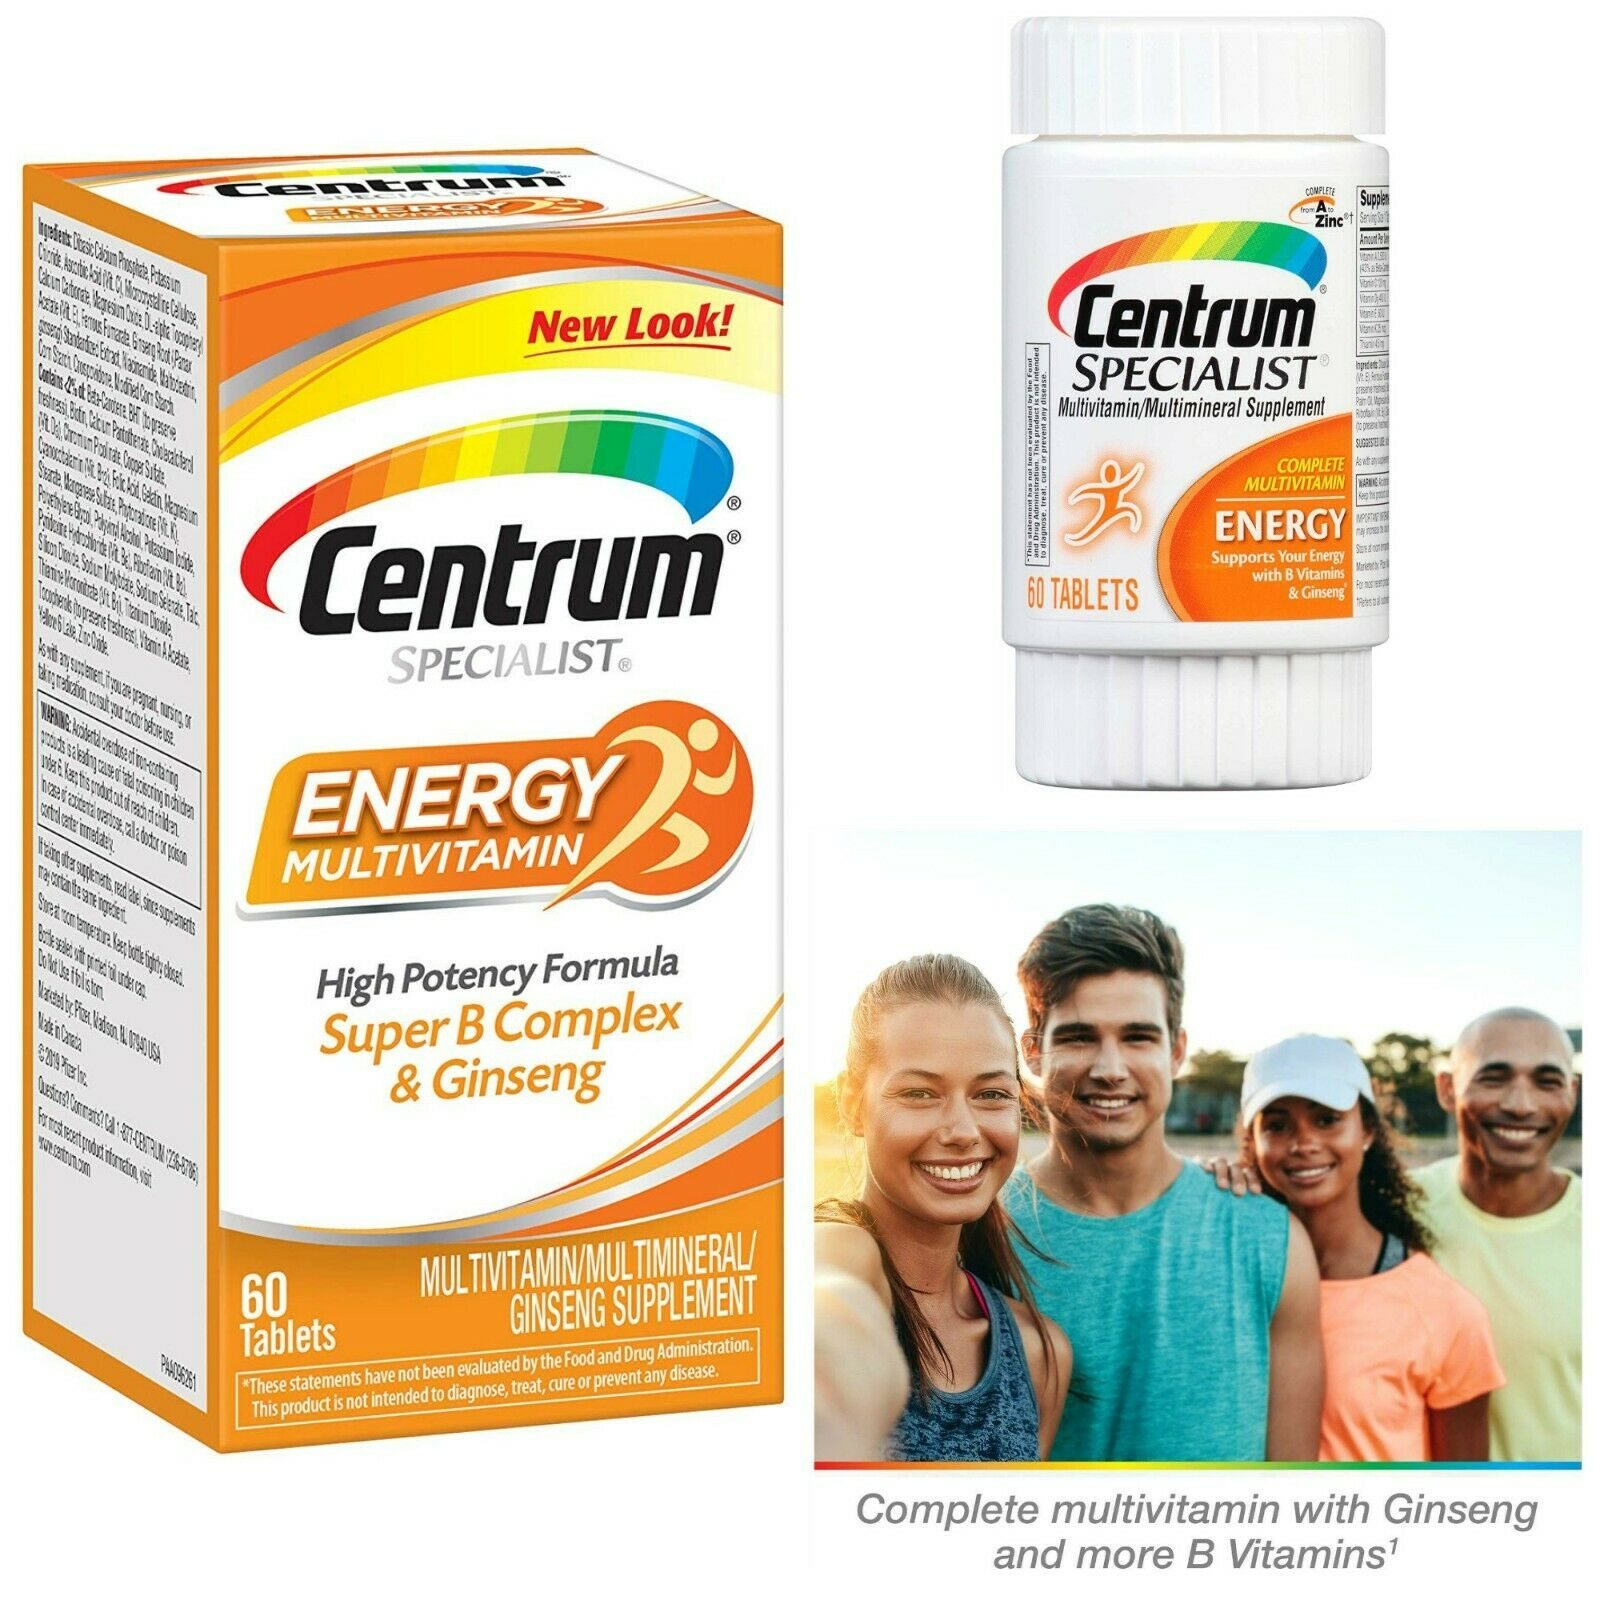 Centrum Energy Multivitamin Supplement 60 Tablets With Ginseng For Men And Women 300054470607 Ebay